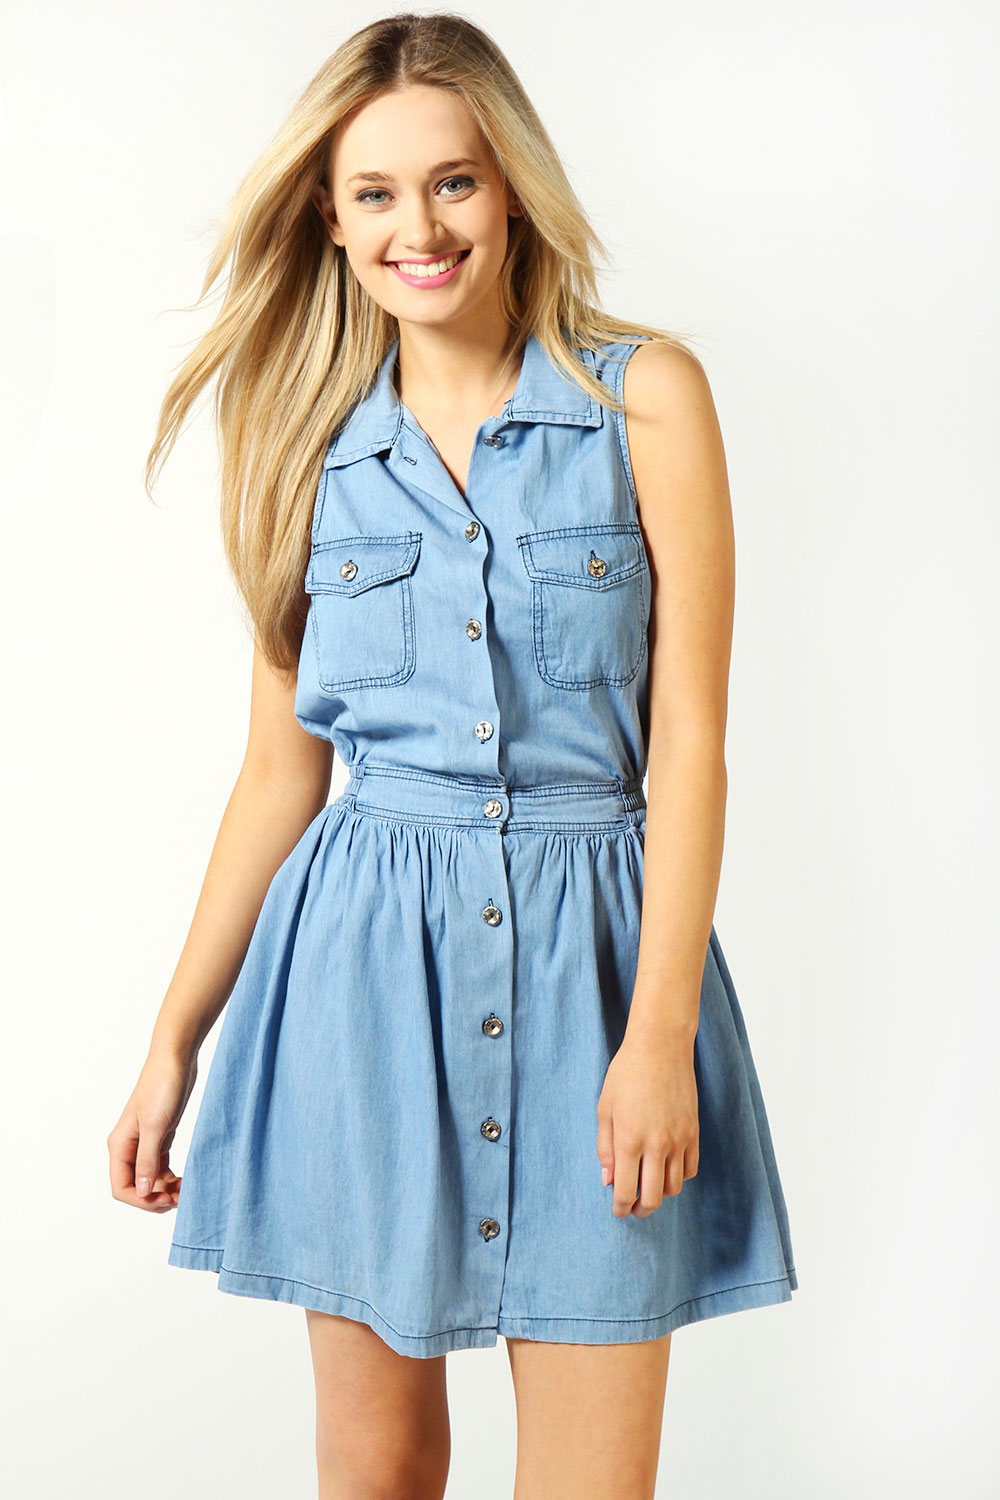 Denim Dresses If you're looking for an easy yet stylish outfit option, you simply cannot go wrong with a hot denim hitseparatingfiletransfer.tking the easiness of dresses with the versatility of denim, jean dresses are basically a life saver for any woman.